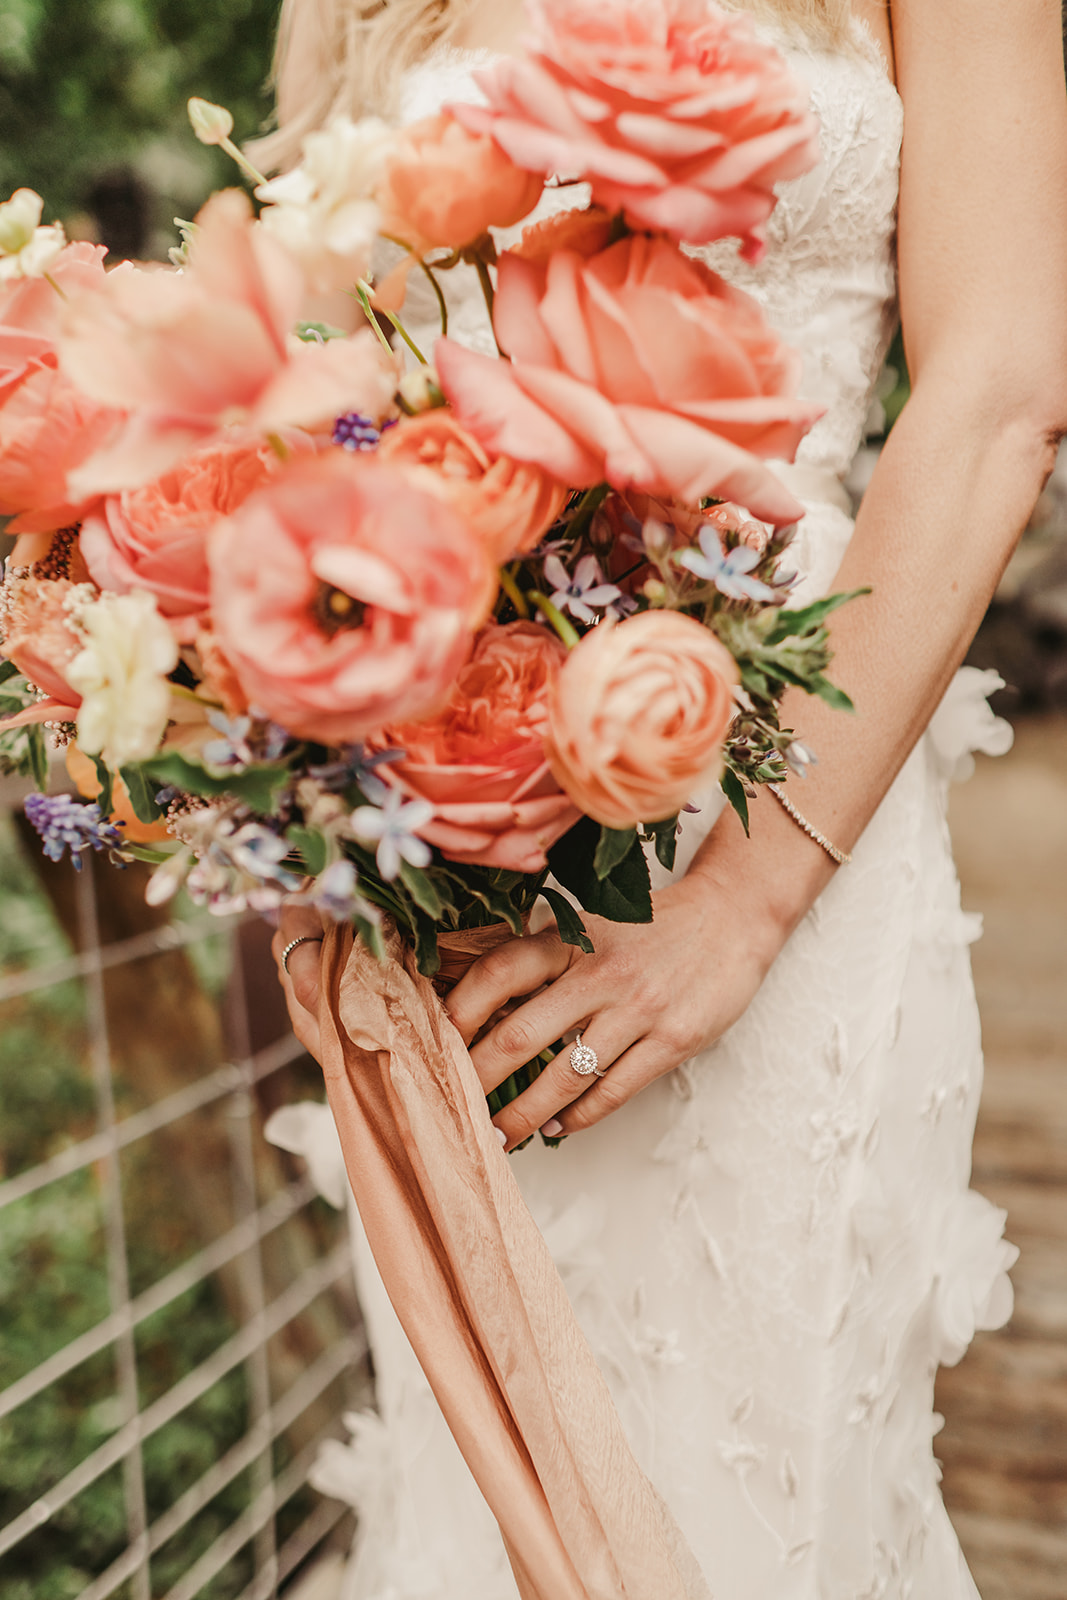 Kaitlin Holding Beautiful Flowers | The Wedding Standard